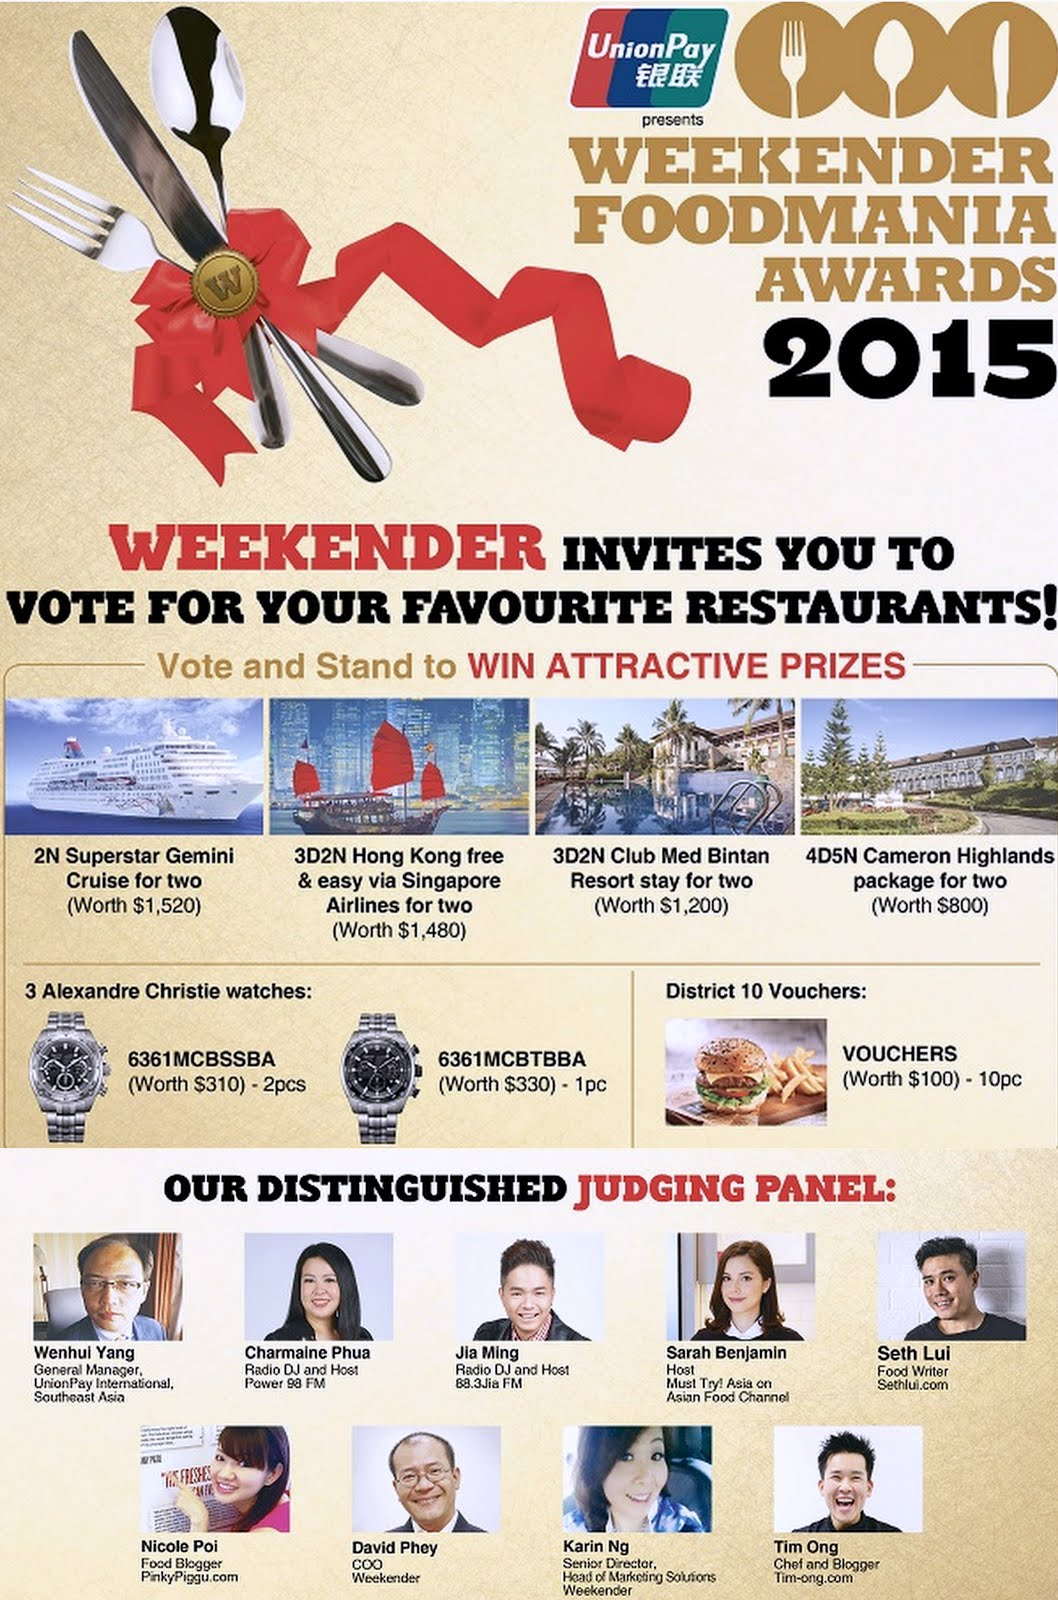 Weekender Foodmania Awards 2015 ~ Vote & Win!